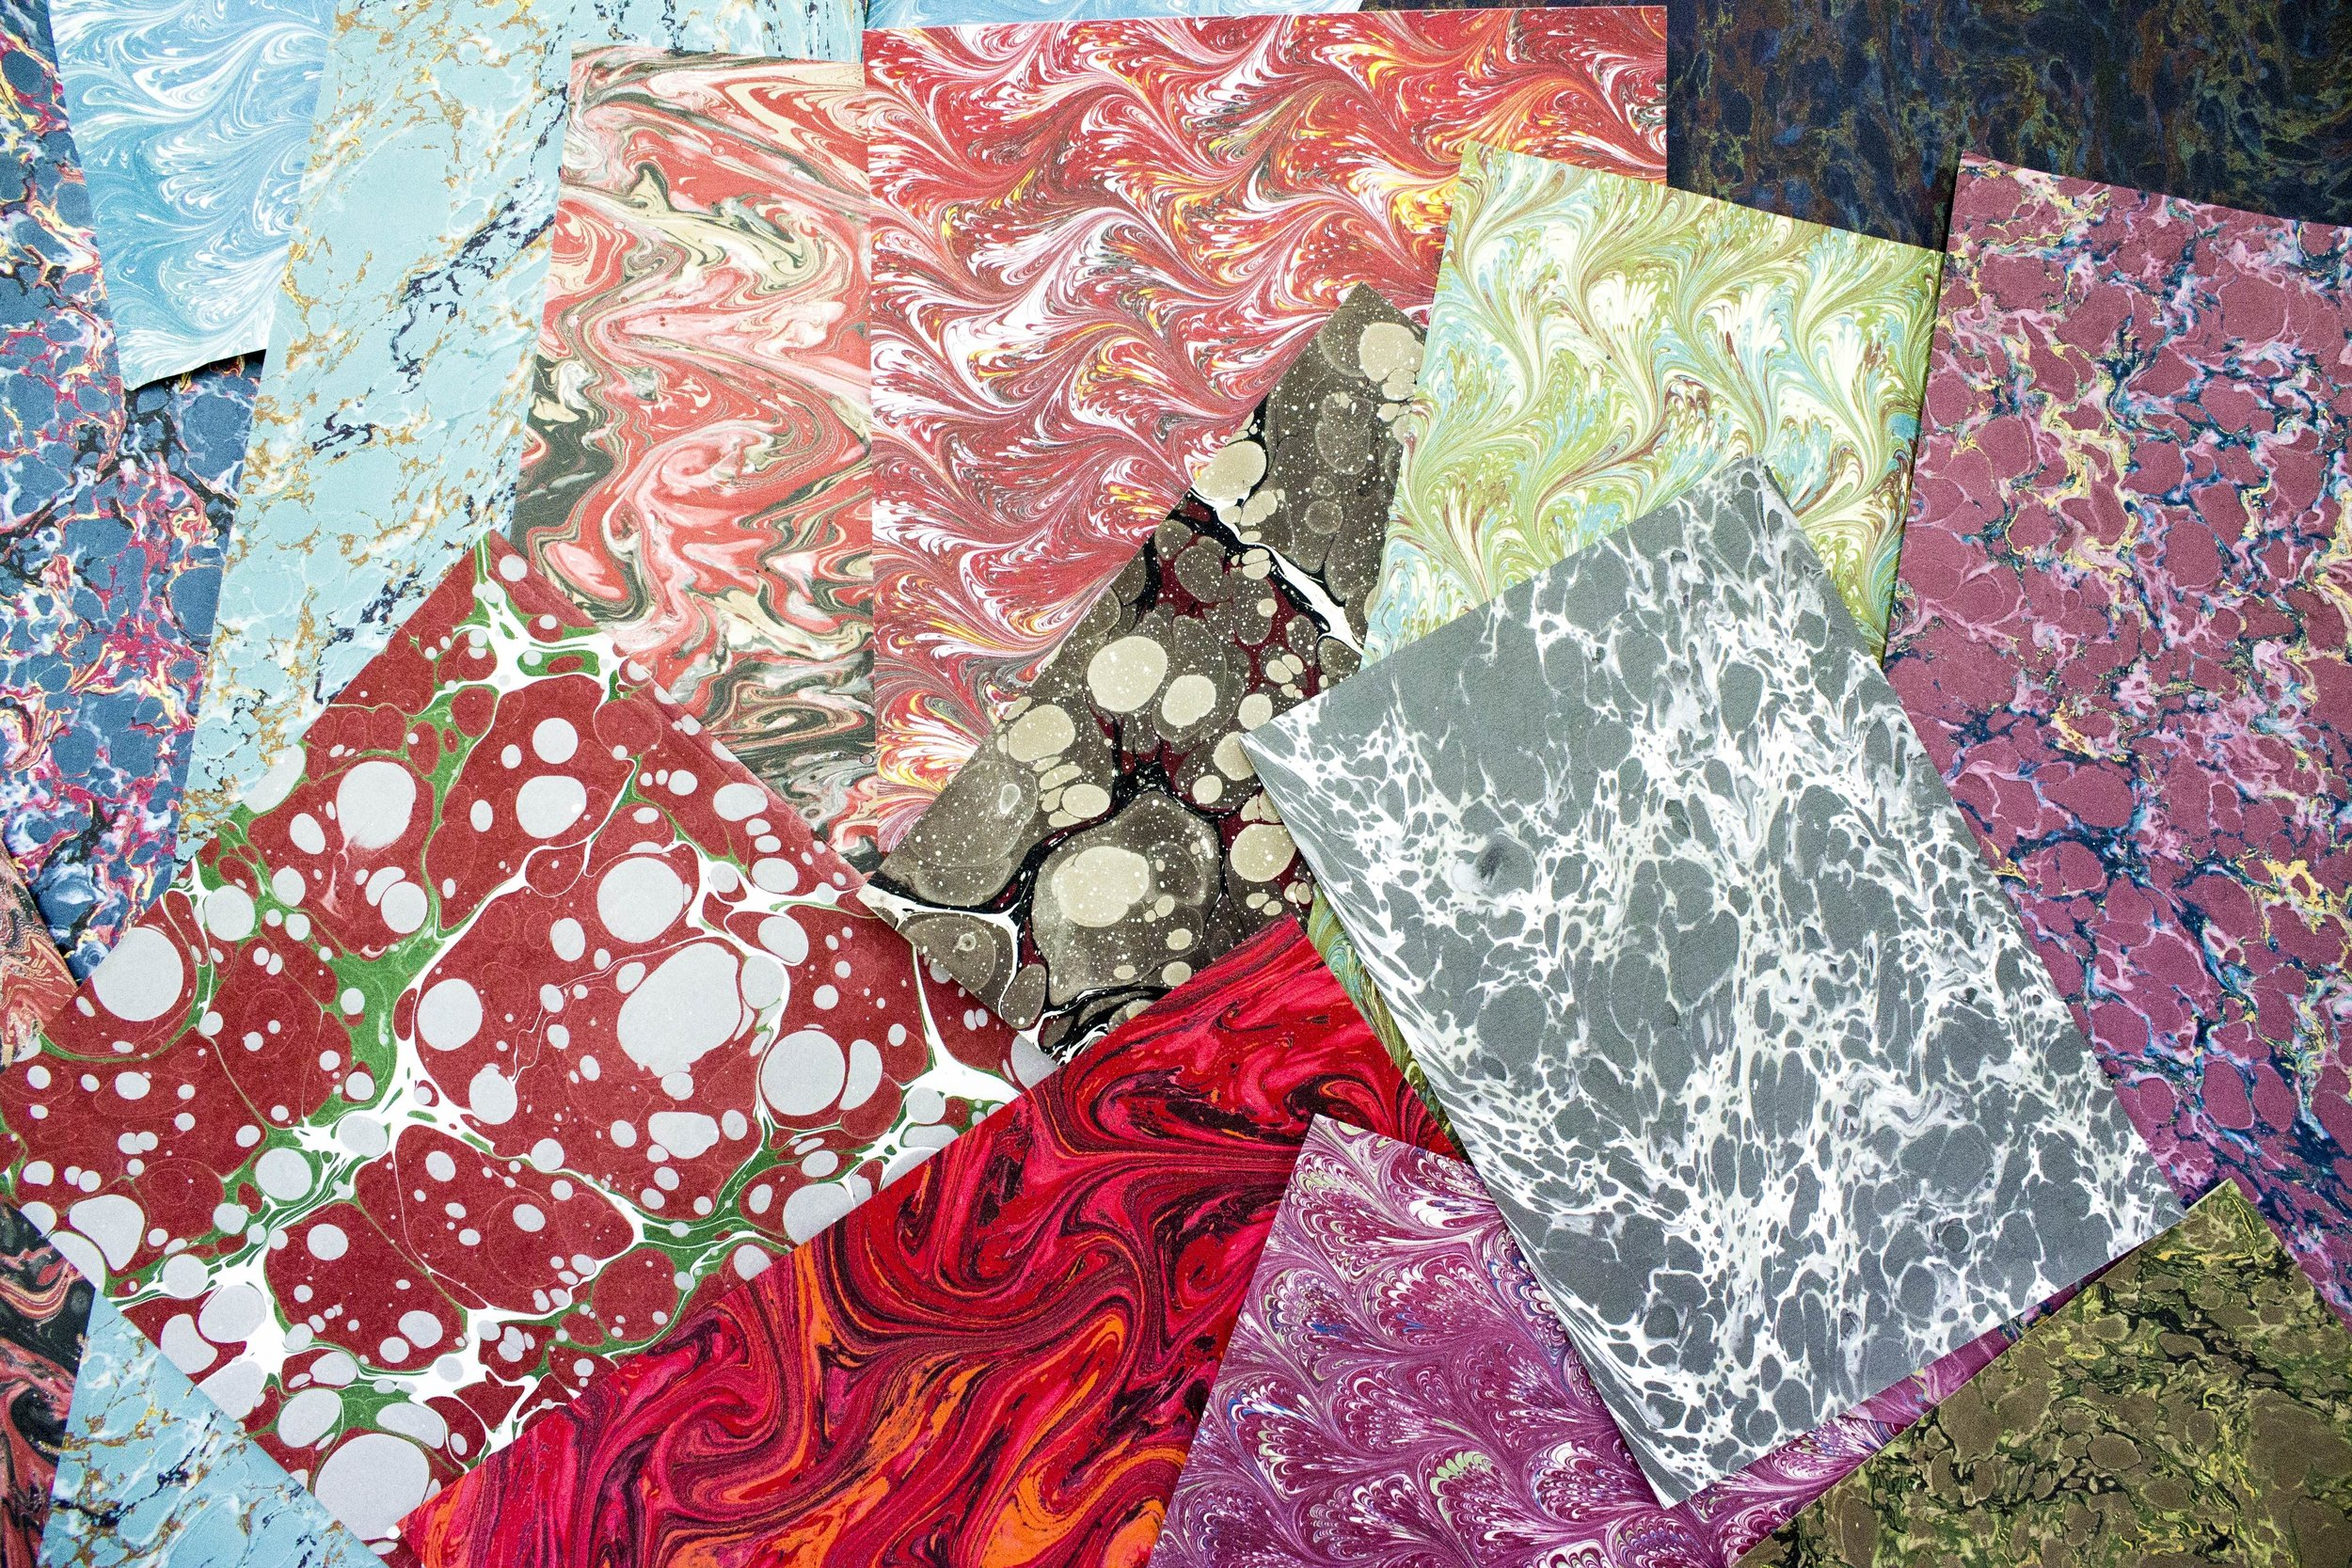 We stocka range of had and machine marbled papers.   Contact us  to see what we have available.